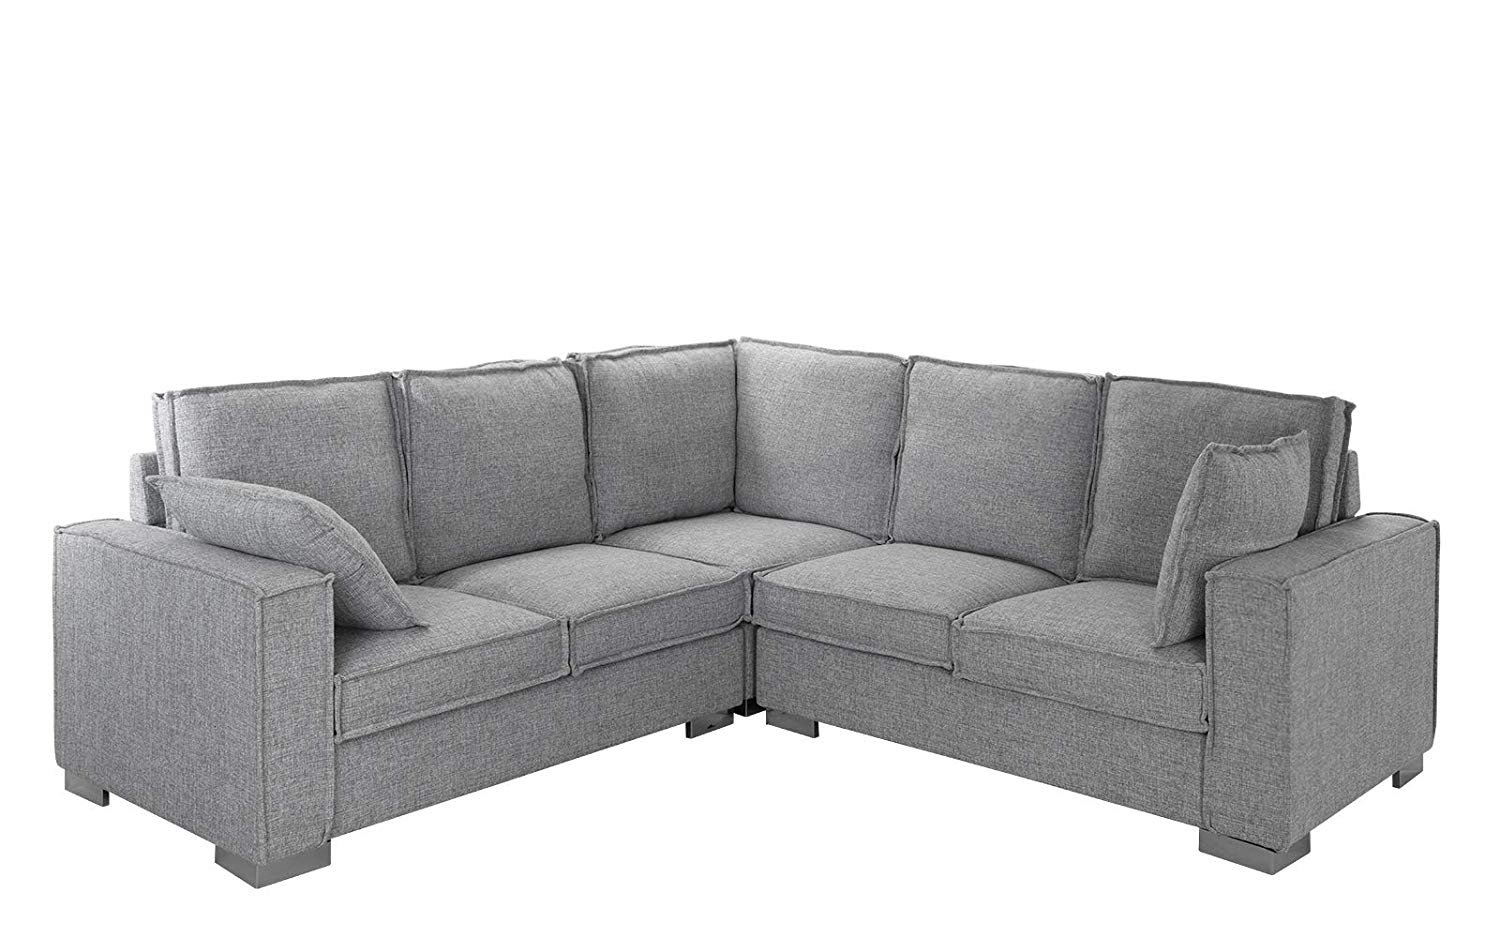 Modern Living Room Fabric Sectional Sofa, L Shape Couch W